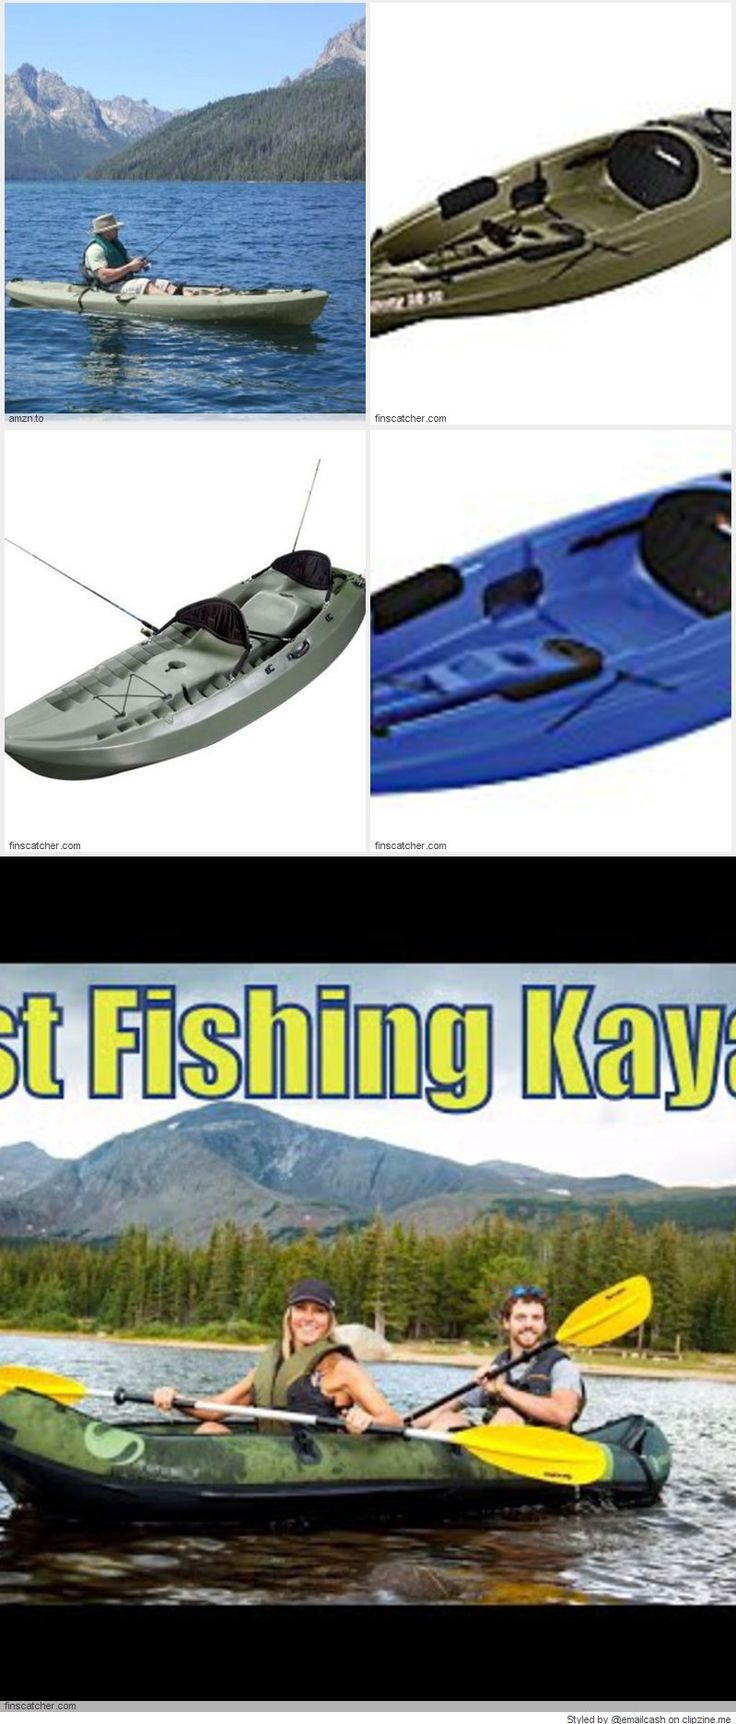 614 best summer fun images on pinterest fishing pictures for Ocean kayak fishing